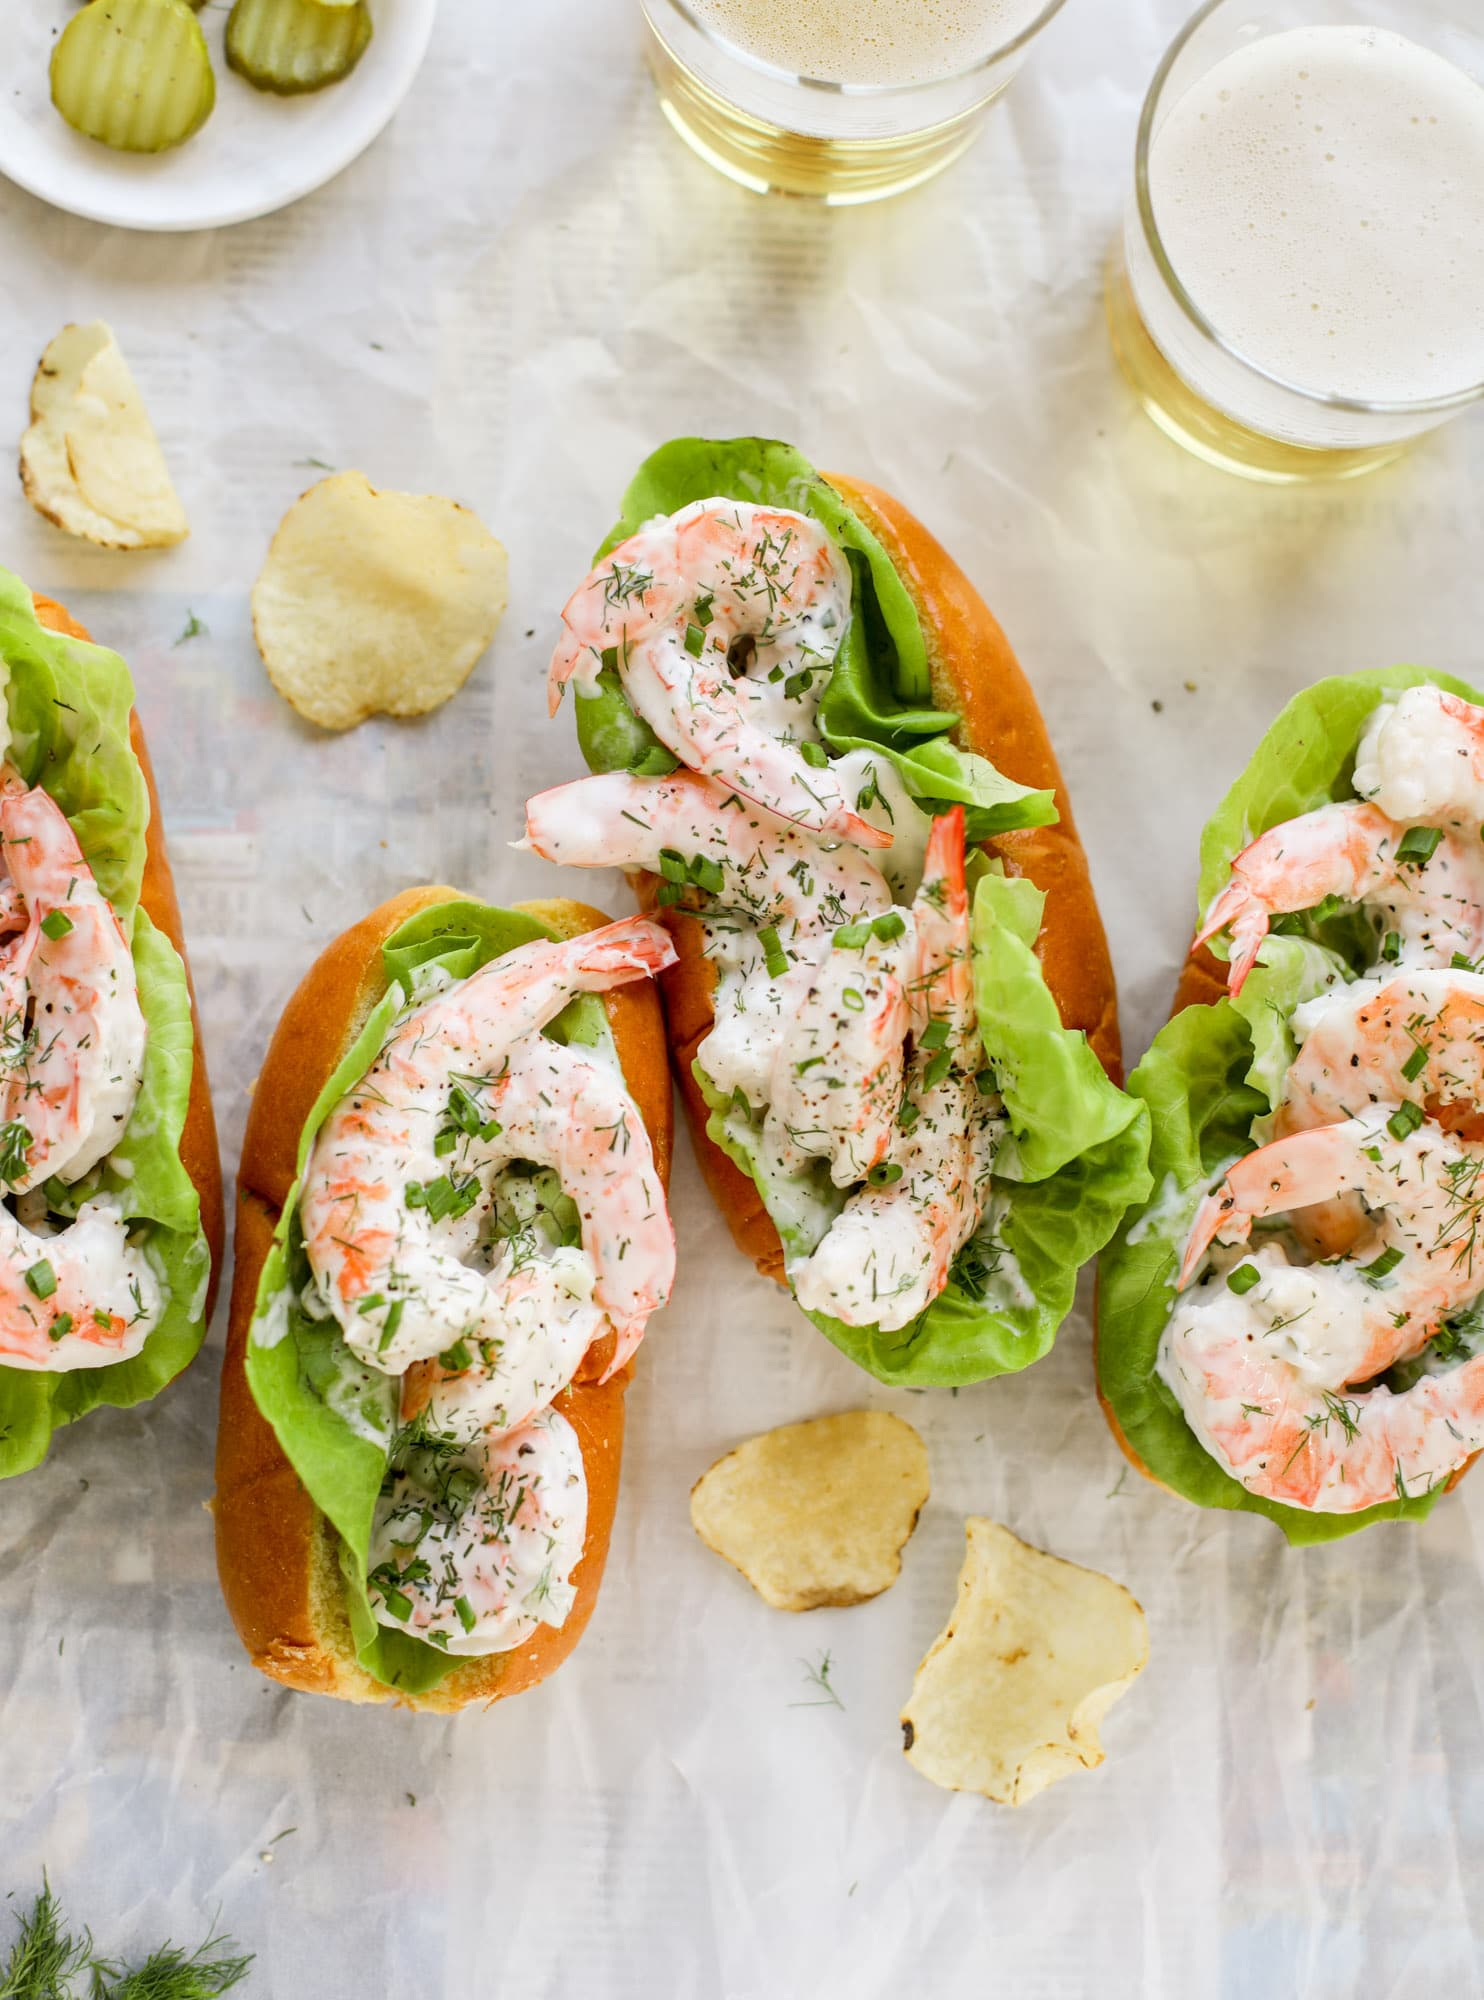 These shrimp salad rolls are my go-to simple, easy, no-cook dinner for hot summer day. Serve with pickles, potato chips and a spritz of lemon!